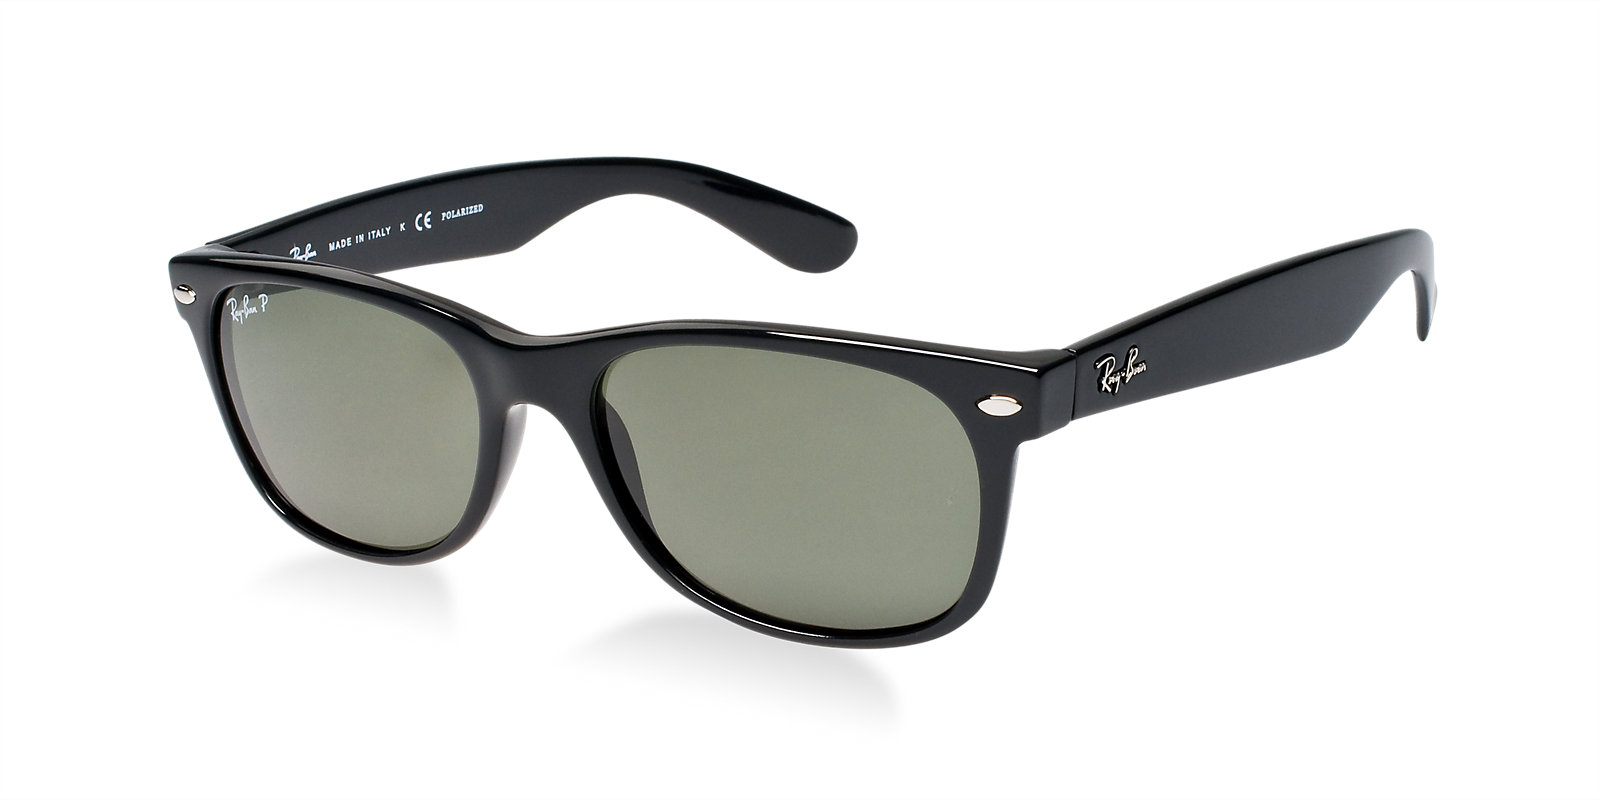 f4c44ebba3 Previous  Next. Previous  Next. RAY-BAN RB2132 901 58 BLACK POLARIZED NEW  WAYFARER SUNGLASSES